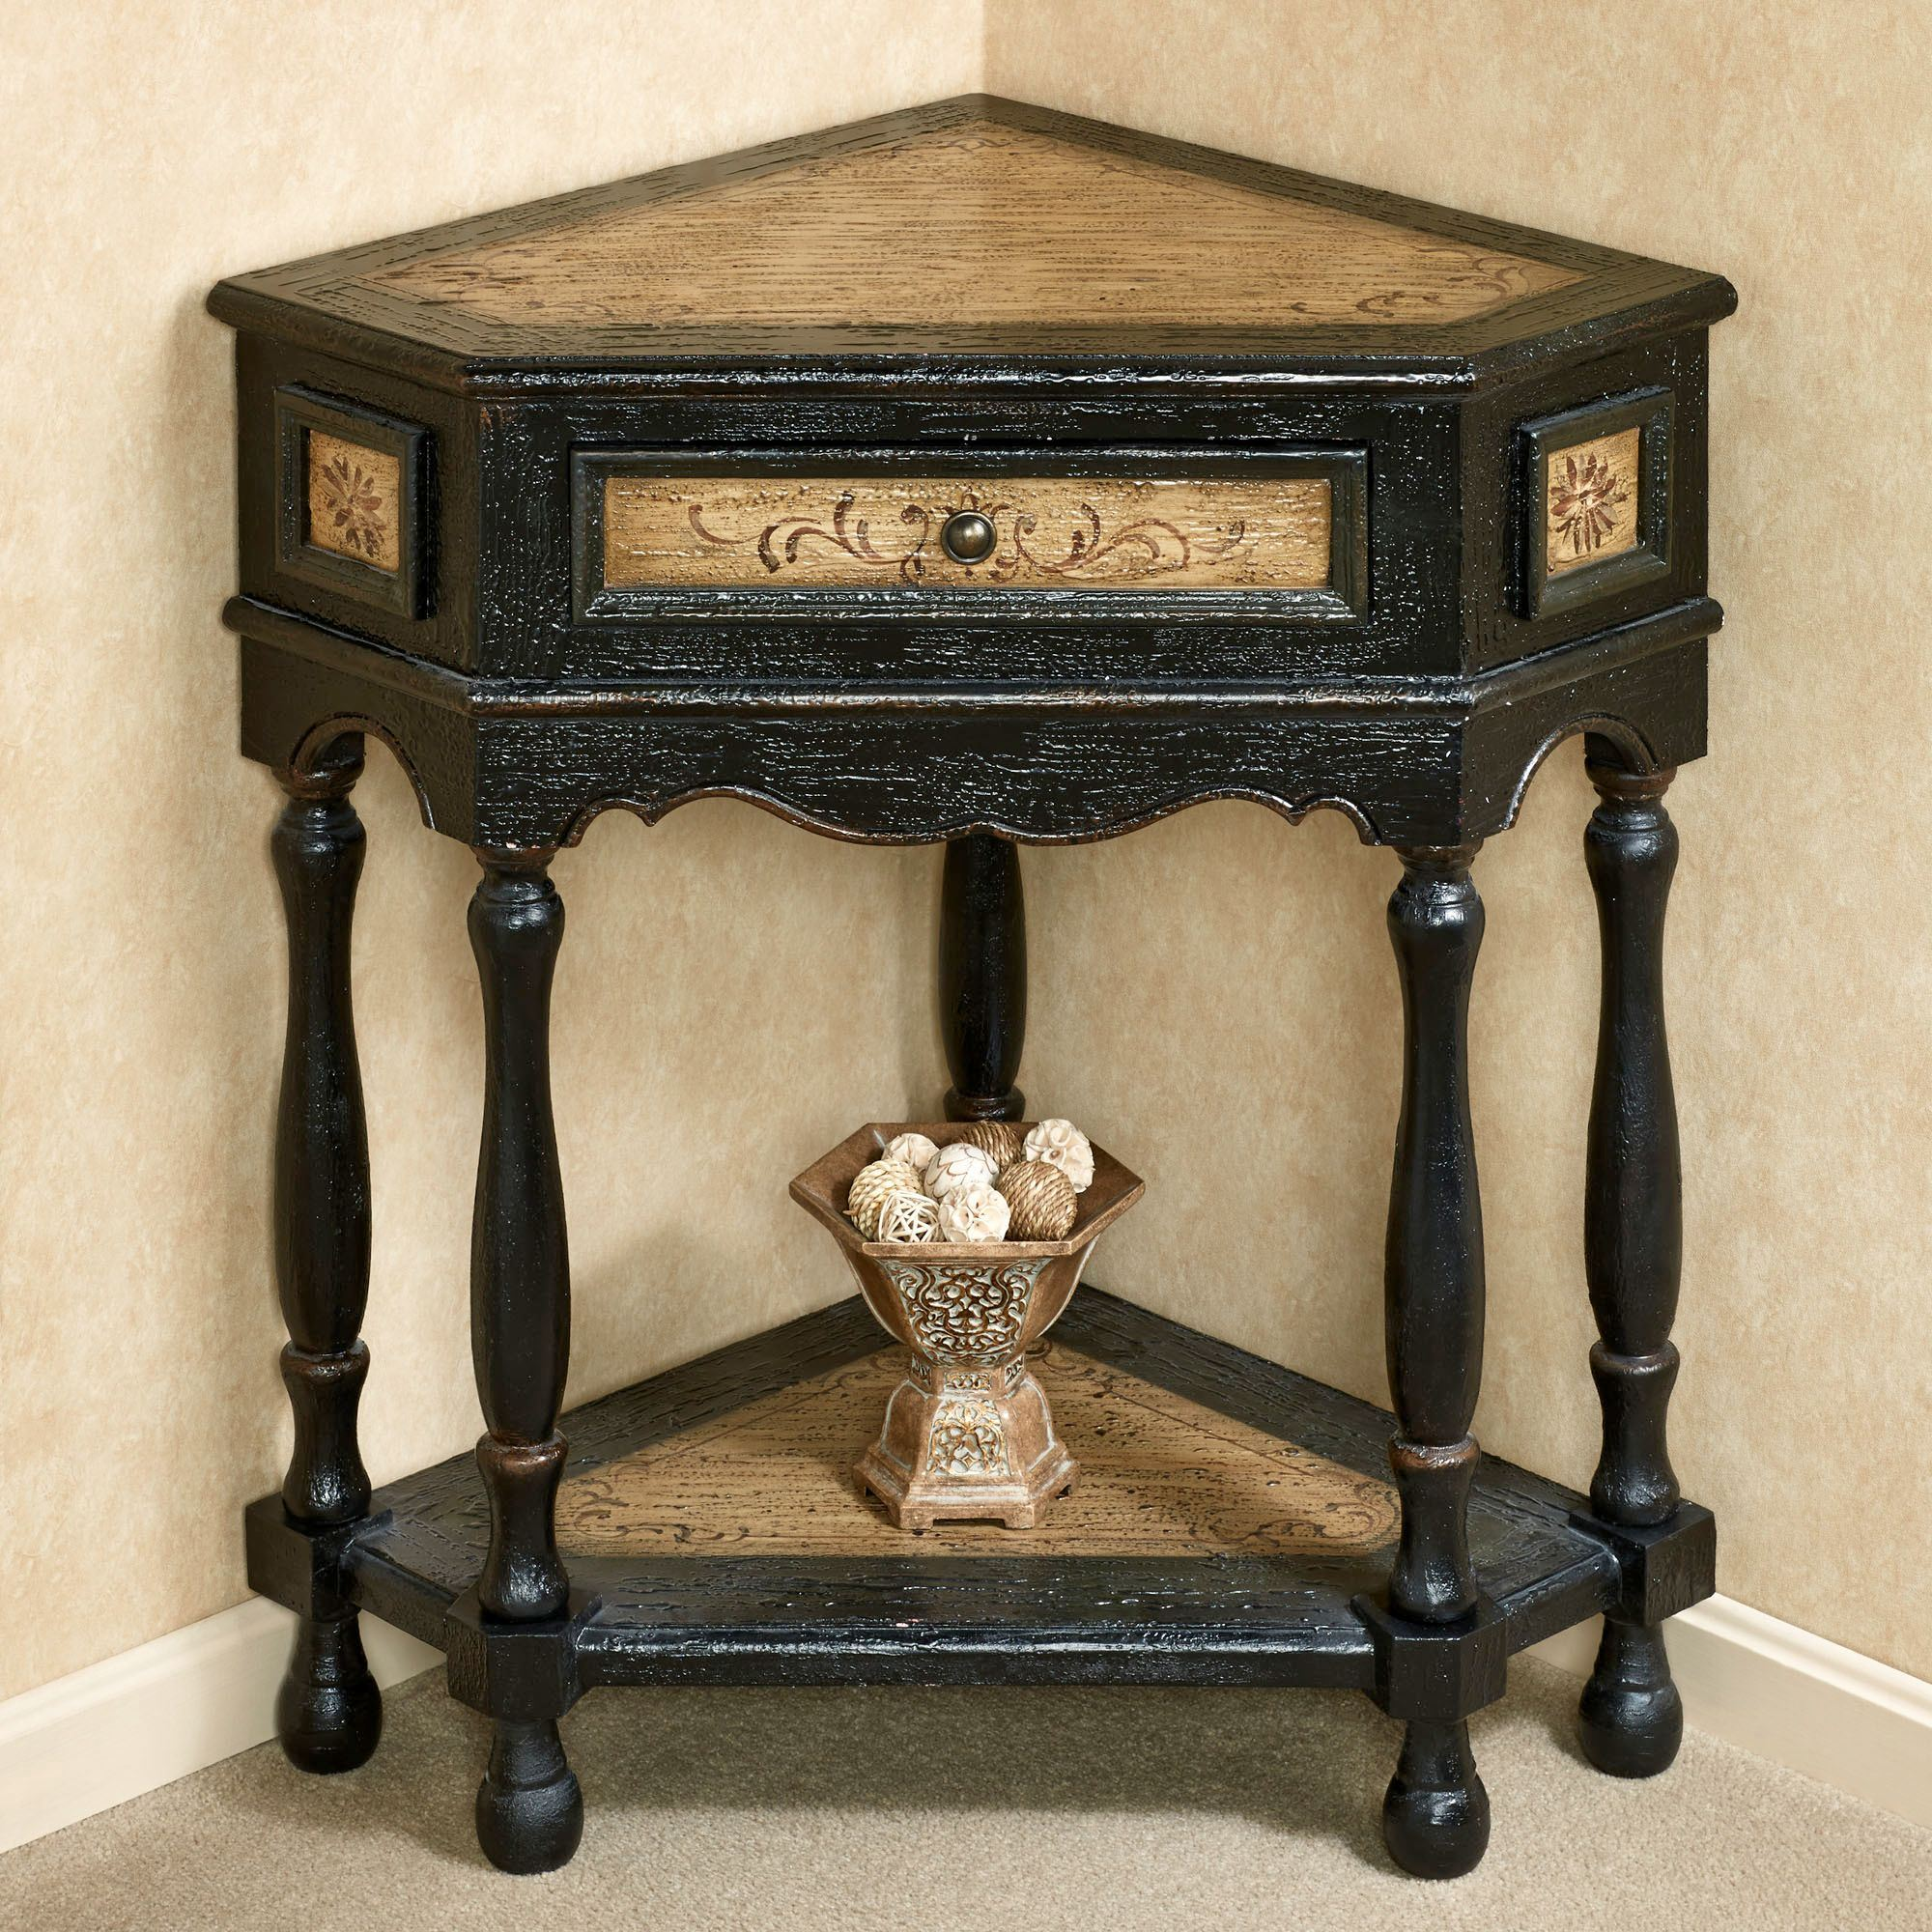 elmhurst black corner accent table with drawer wooden display touch zoom martin furniture hawthorne glass top rustic grey end tables teal bedroom accessories lawn trellis legs